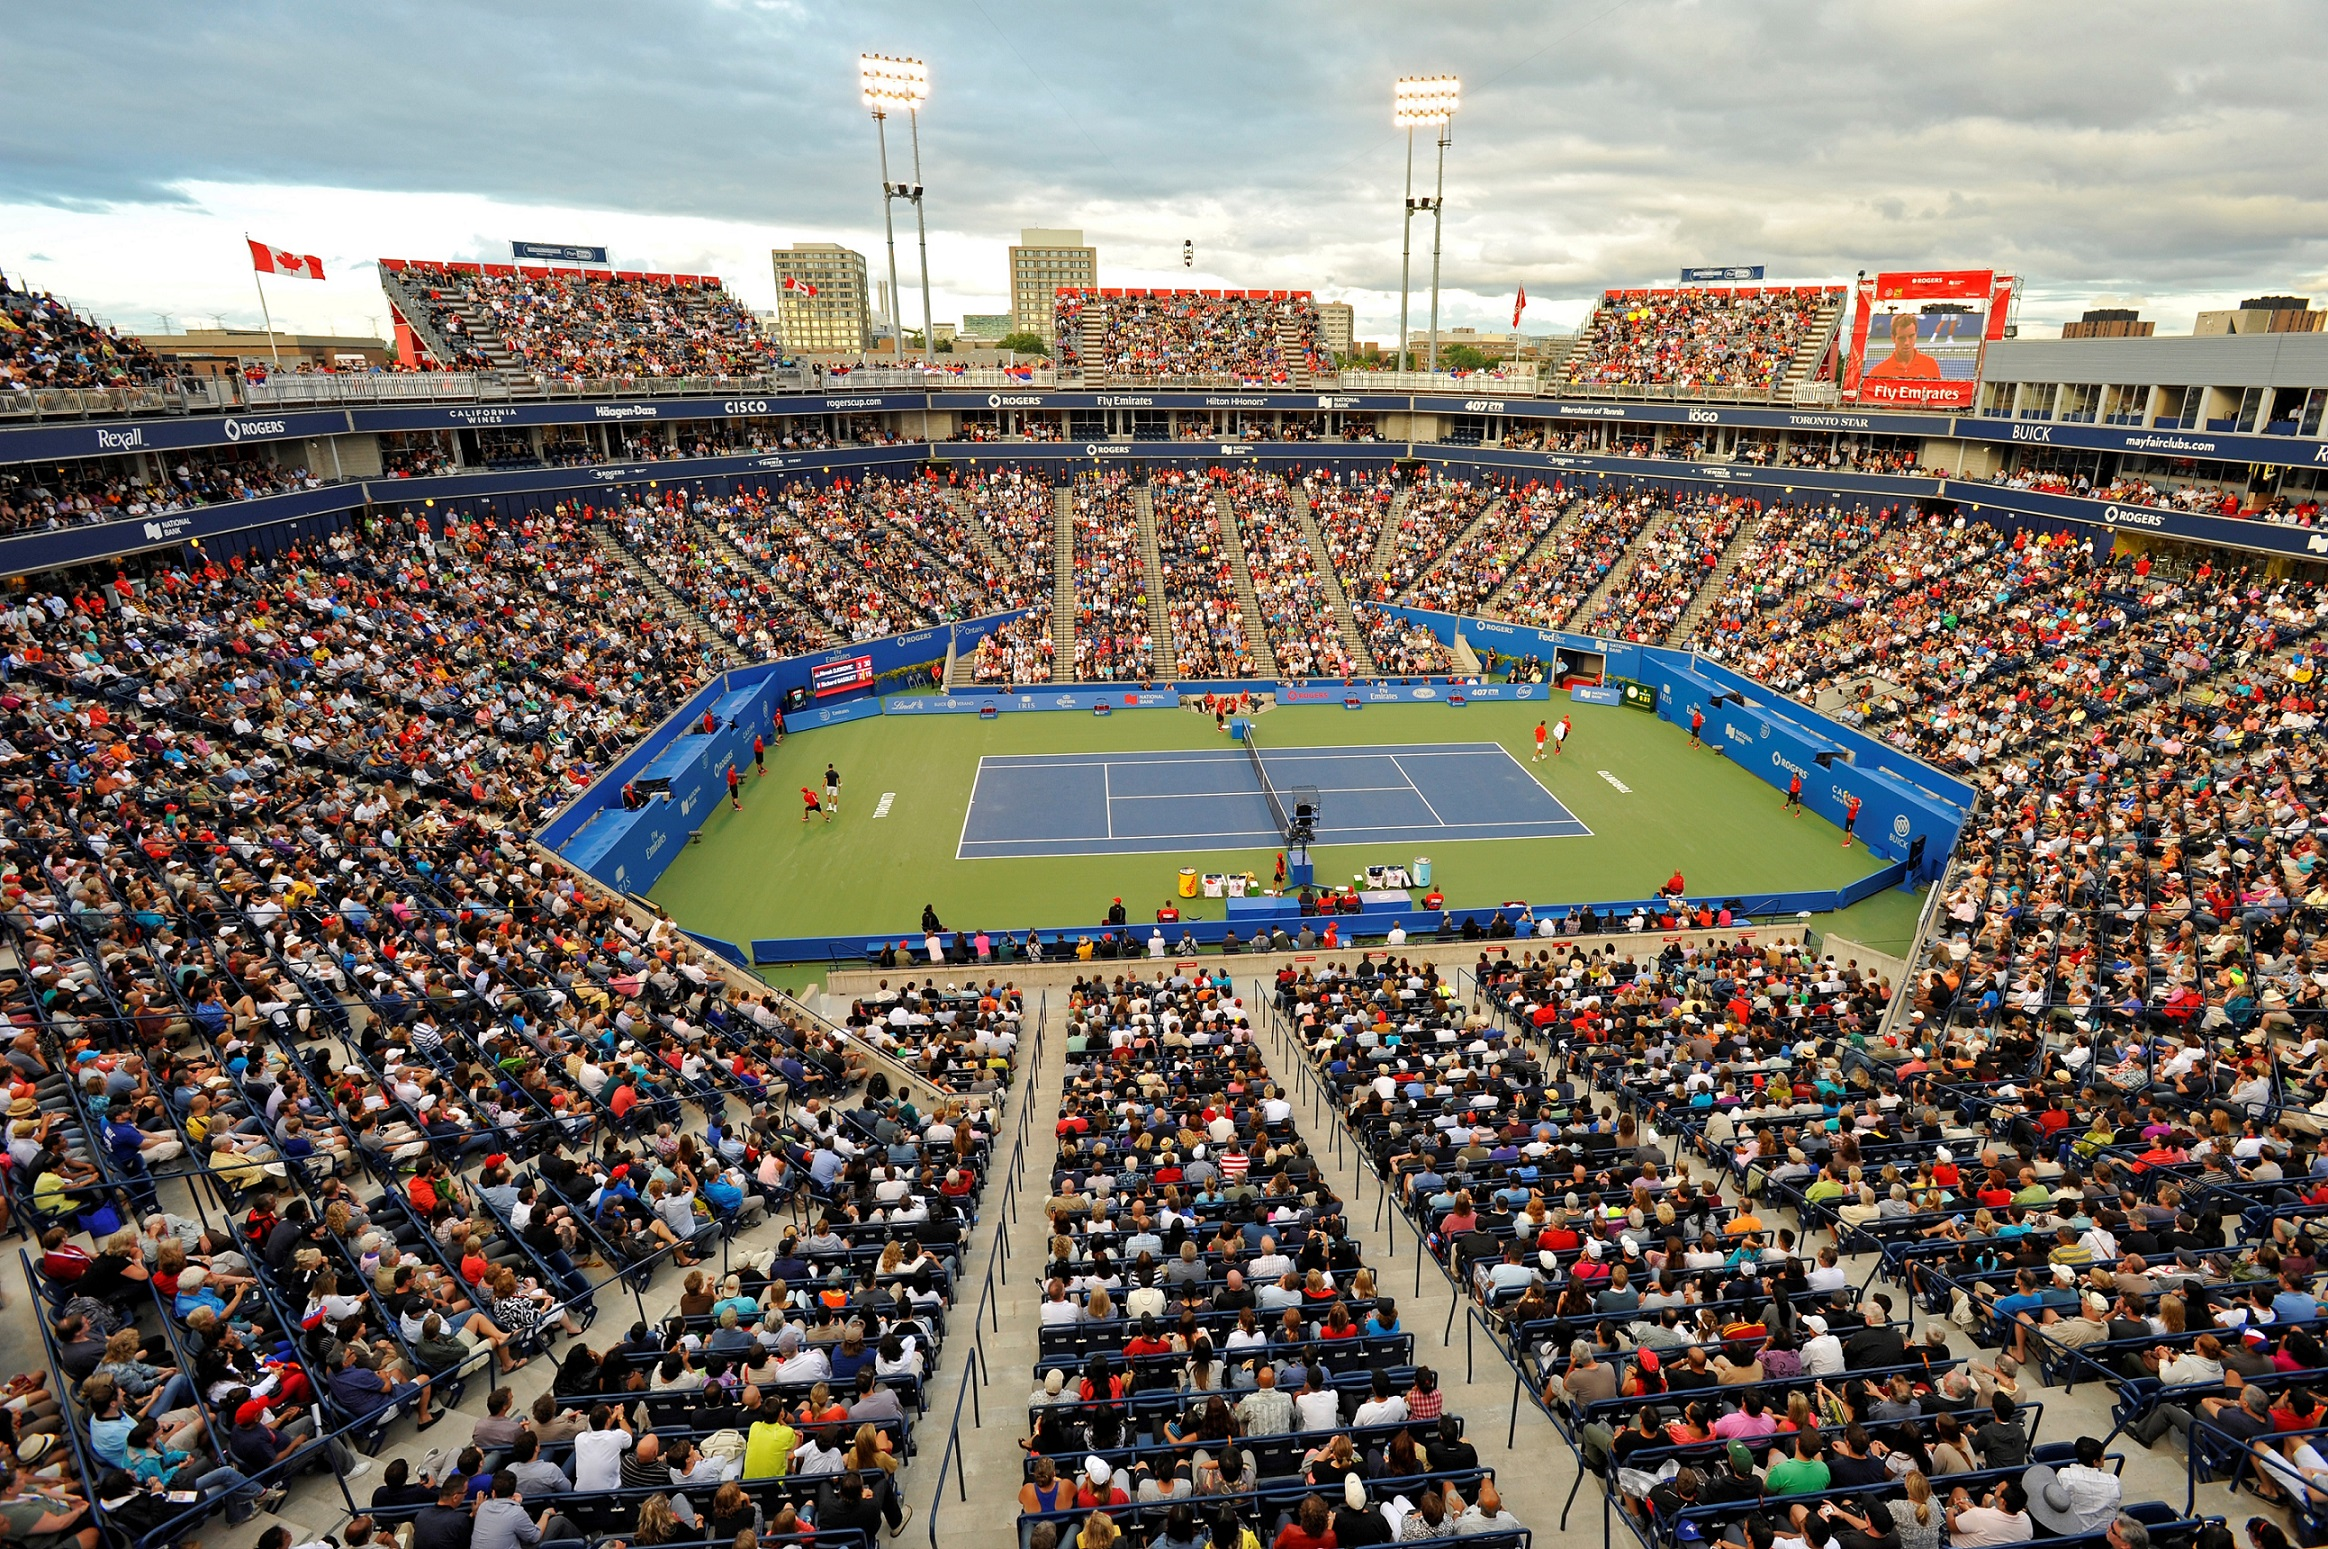 CANADA ROGERS CUP TENNIS